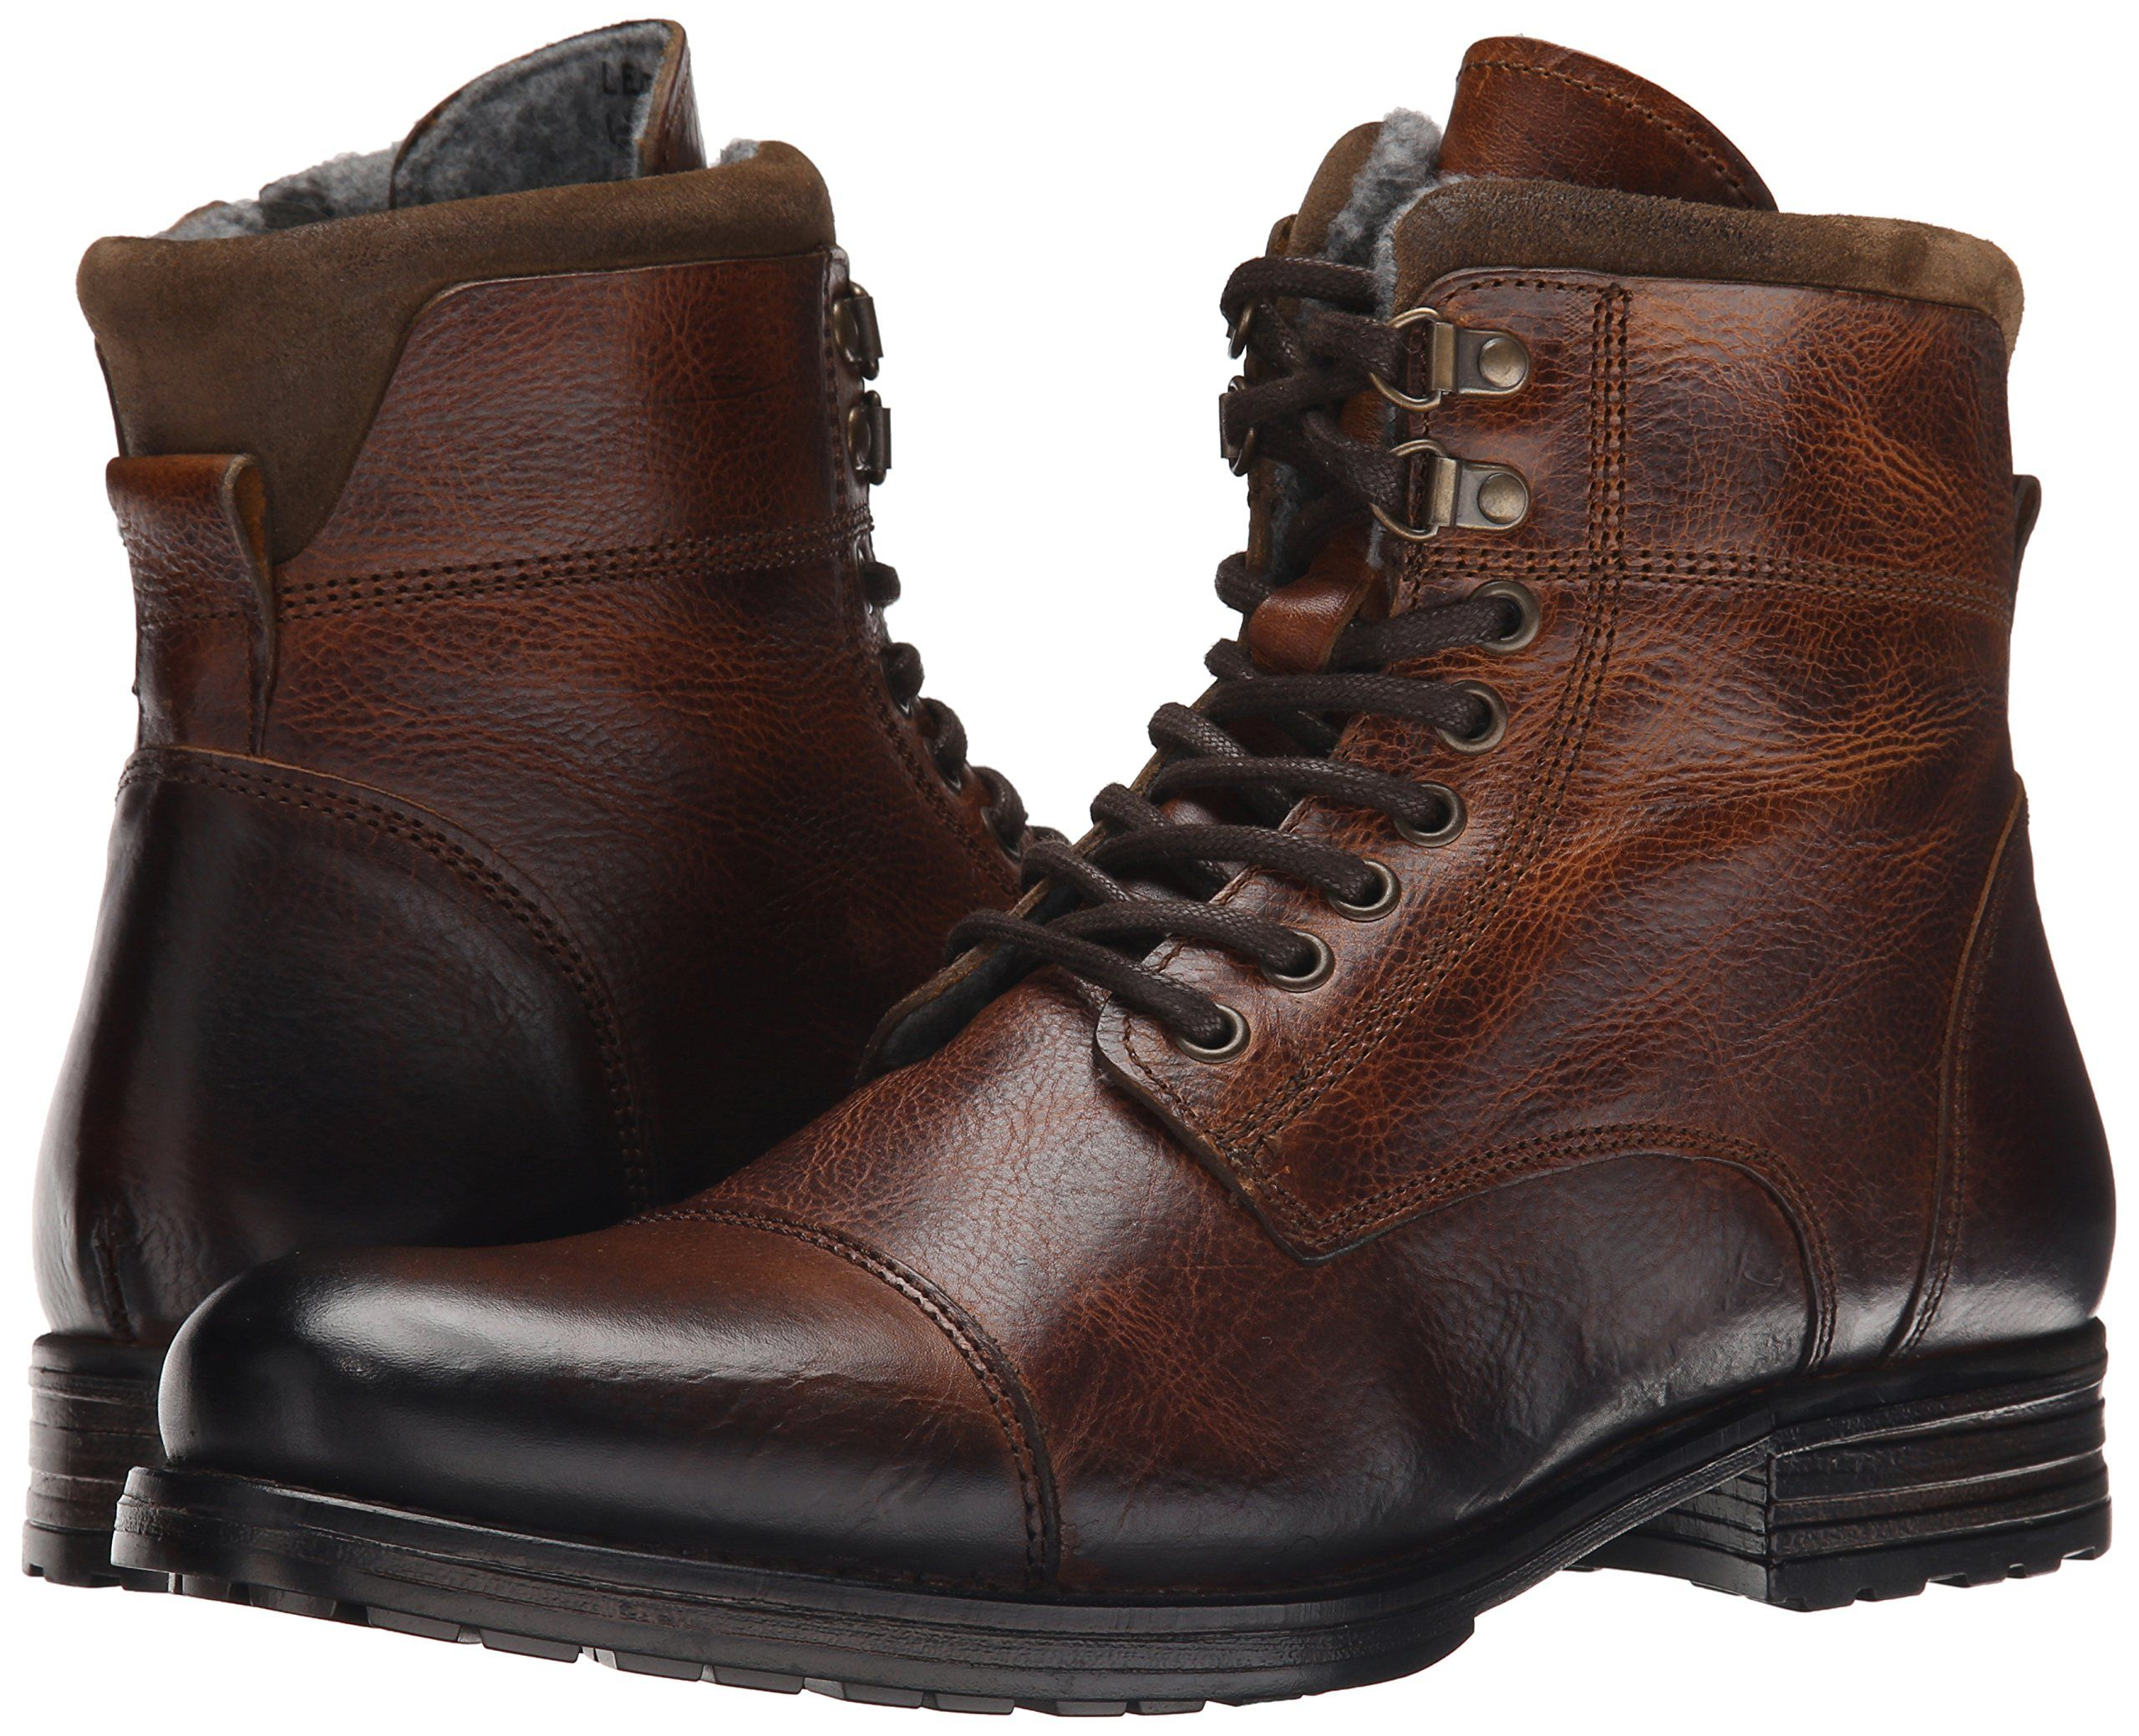 Amazon.com: Aldo Men&39s Giannola Boot: Shoes | Men&39s Clothing